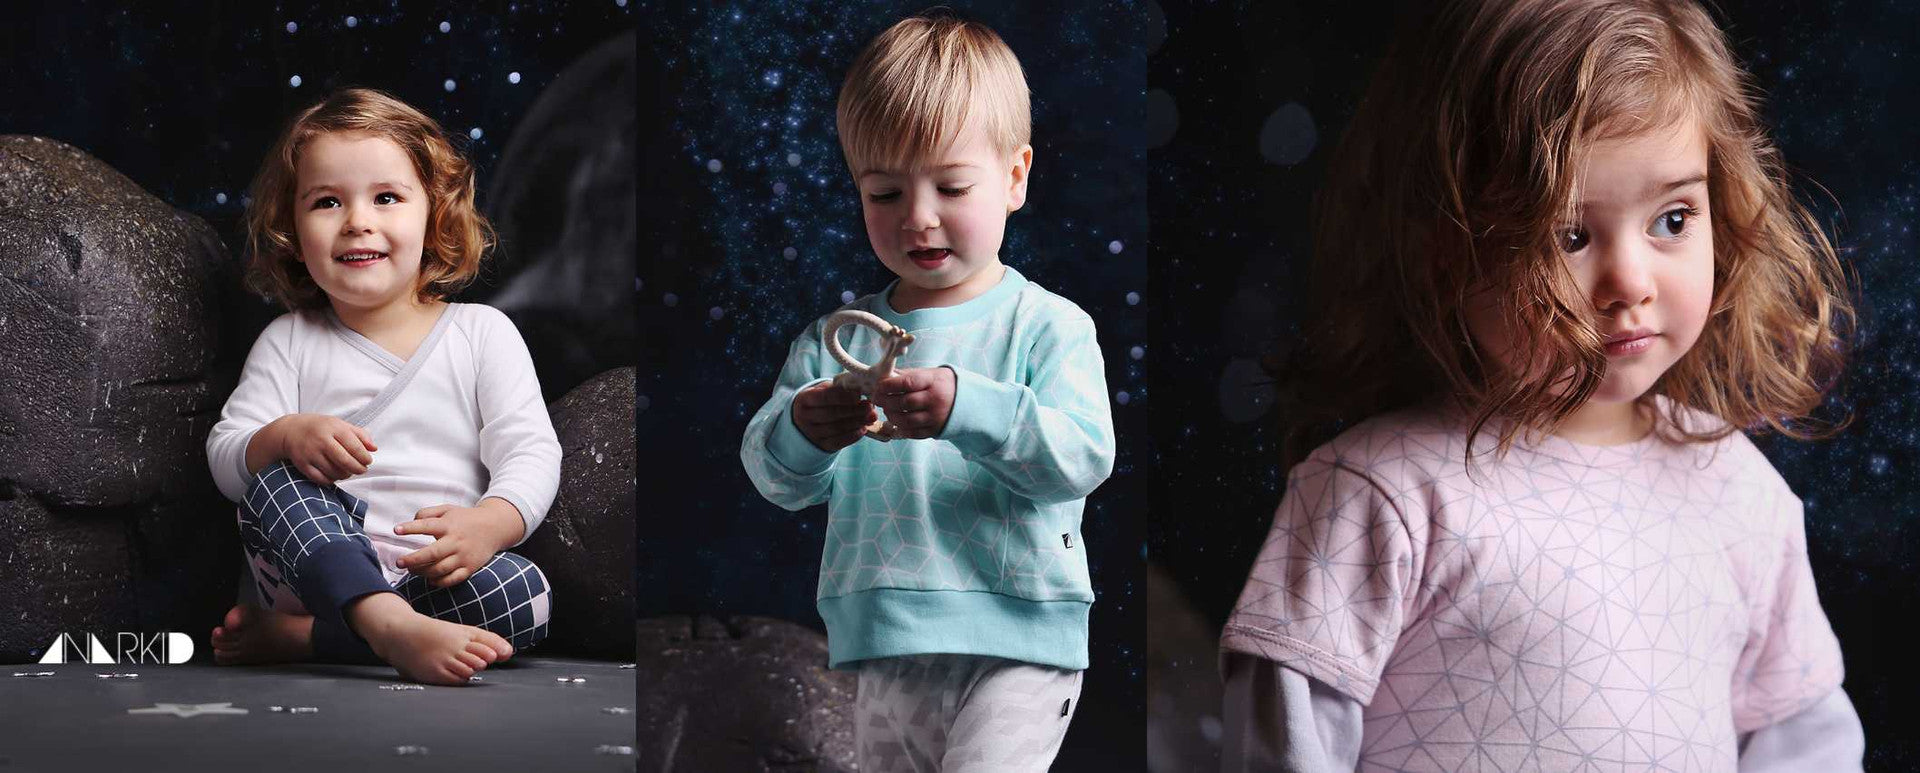 Organic baby and toddler collection from Anarkid